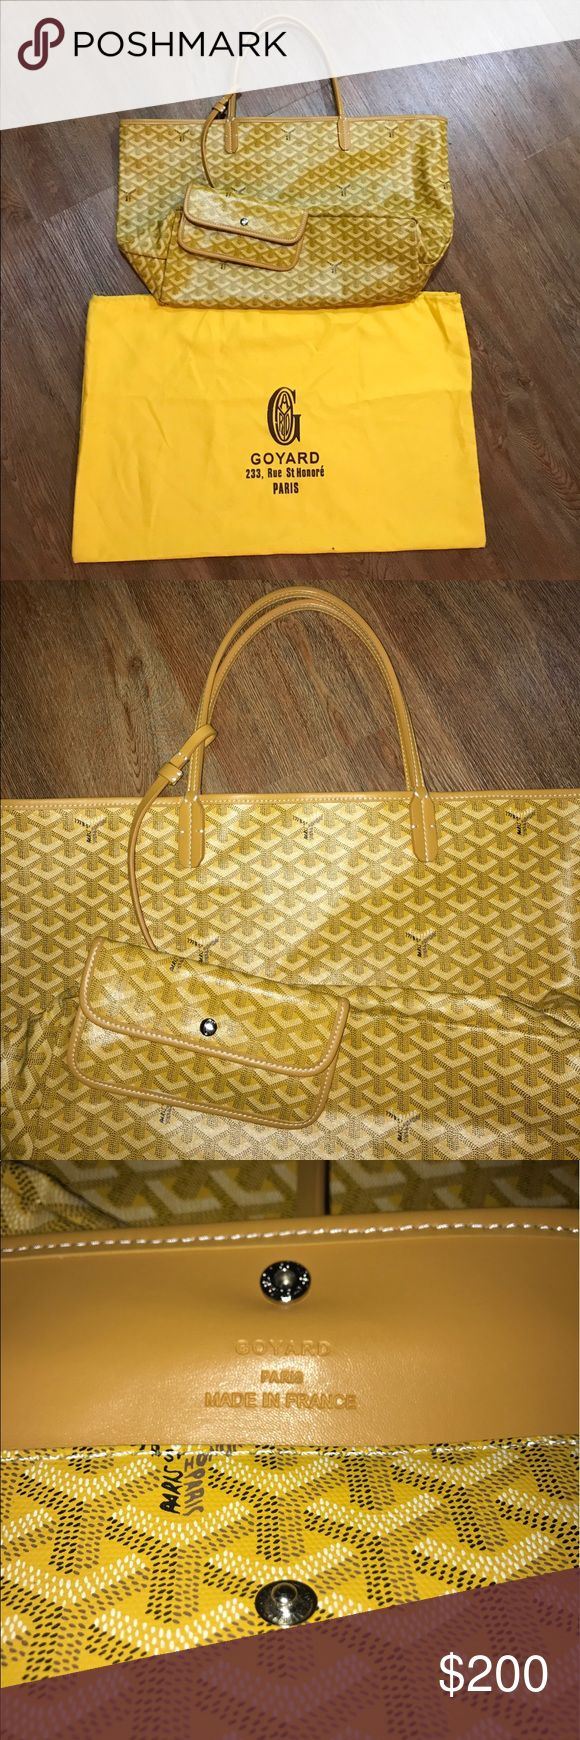 Handbag Yellow Leather Gorgeous Goyard bag. Purchased online. Price reflects the auth. Ask questions or make an offer. Goyard Bags Totes